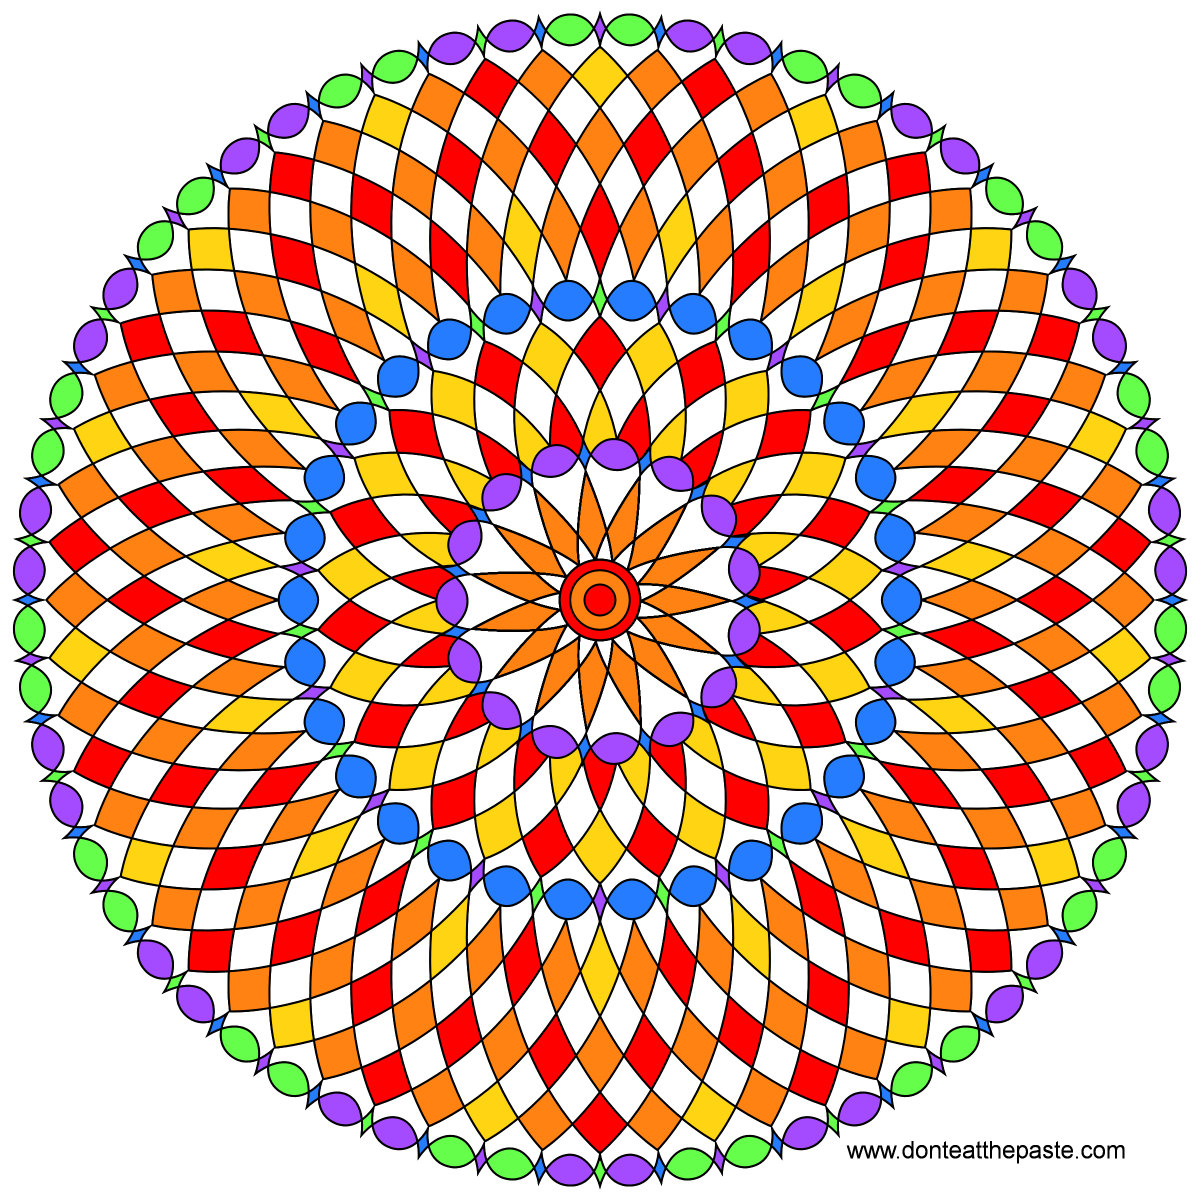 A new mandala to color- blank versions avail in PNG and JPG